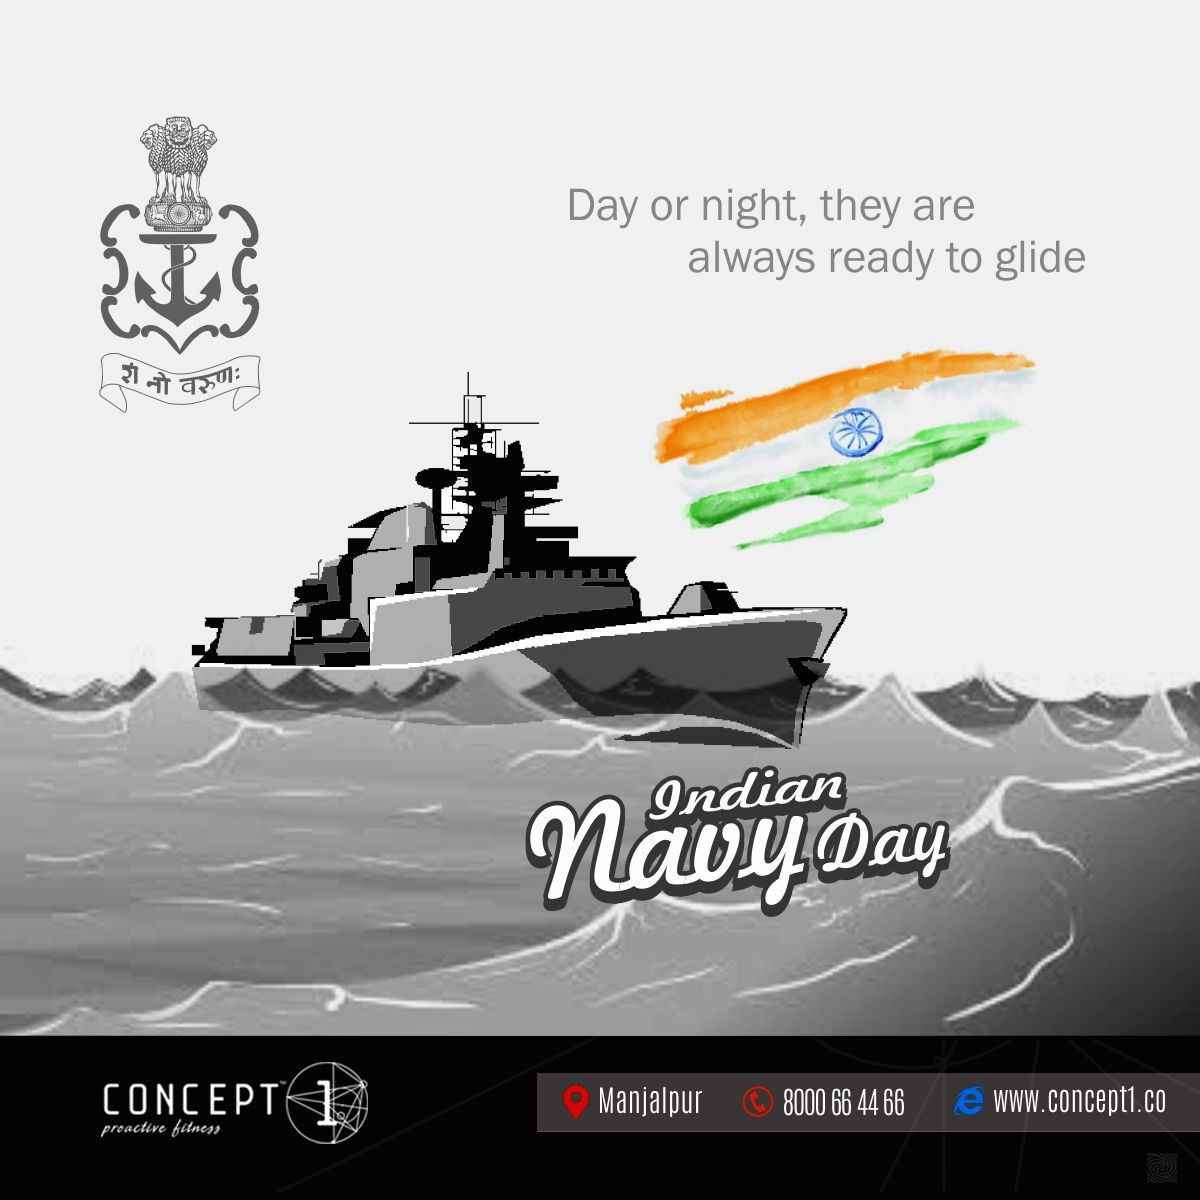 Day Or Night They Are Always Ready To Glide Indian Navy Day Concept1 Proactivefitness Fitness Gym Indian Na Navy Day Indian Navy Day Happy National Day